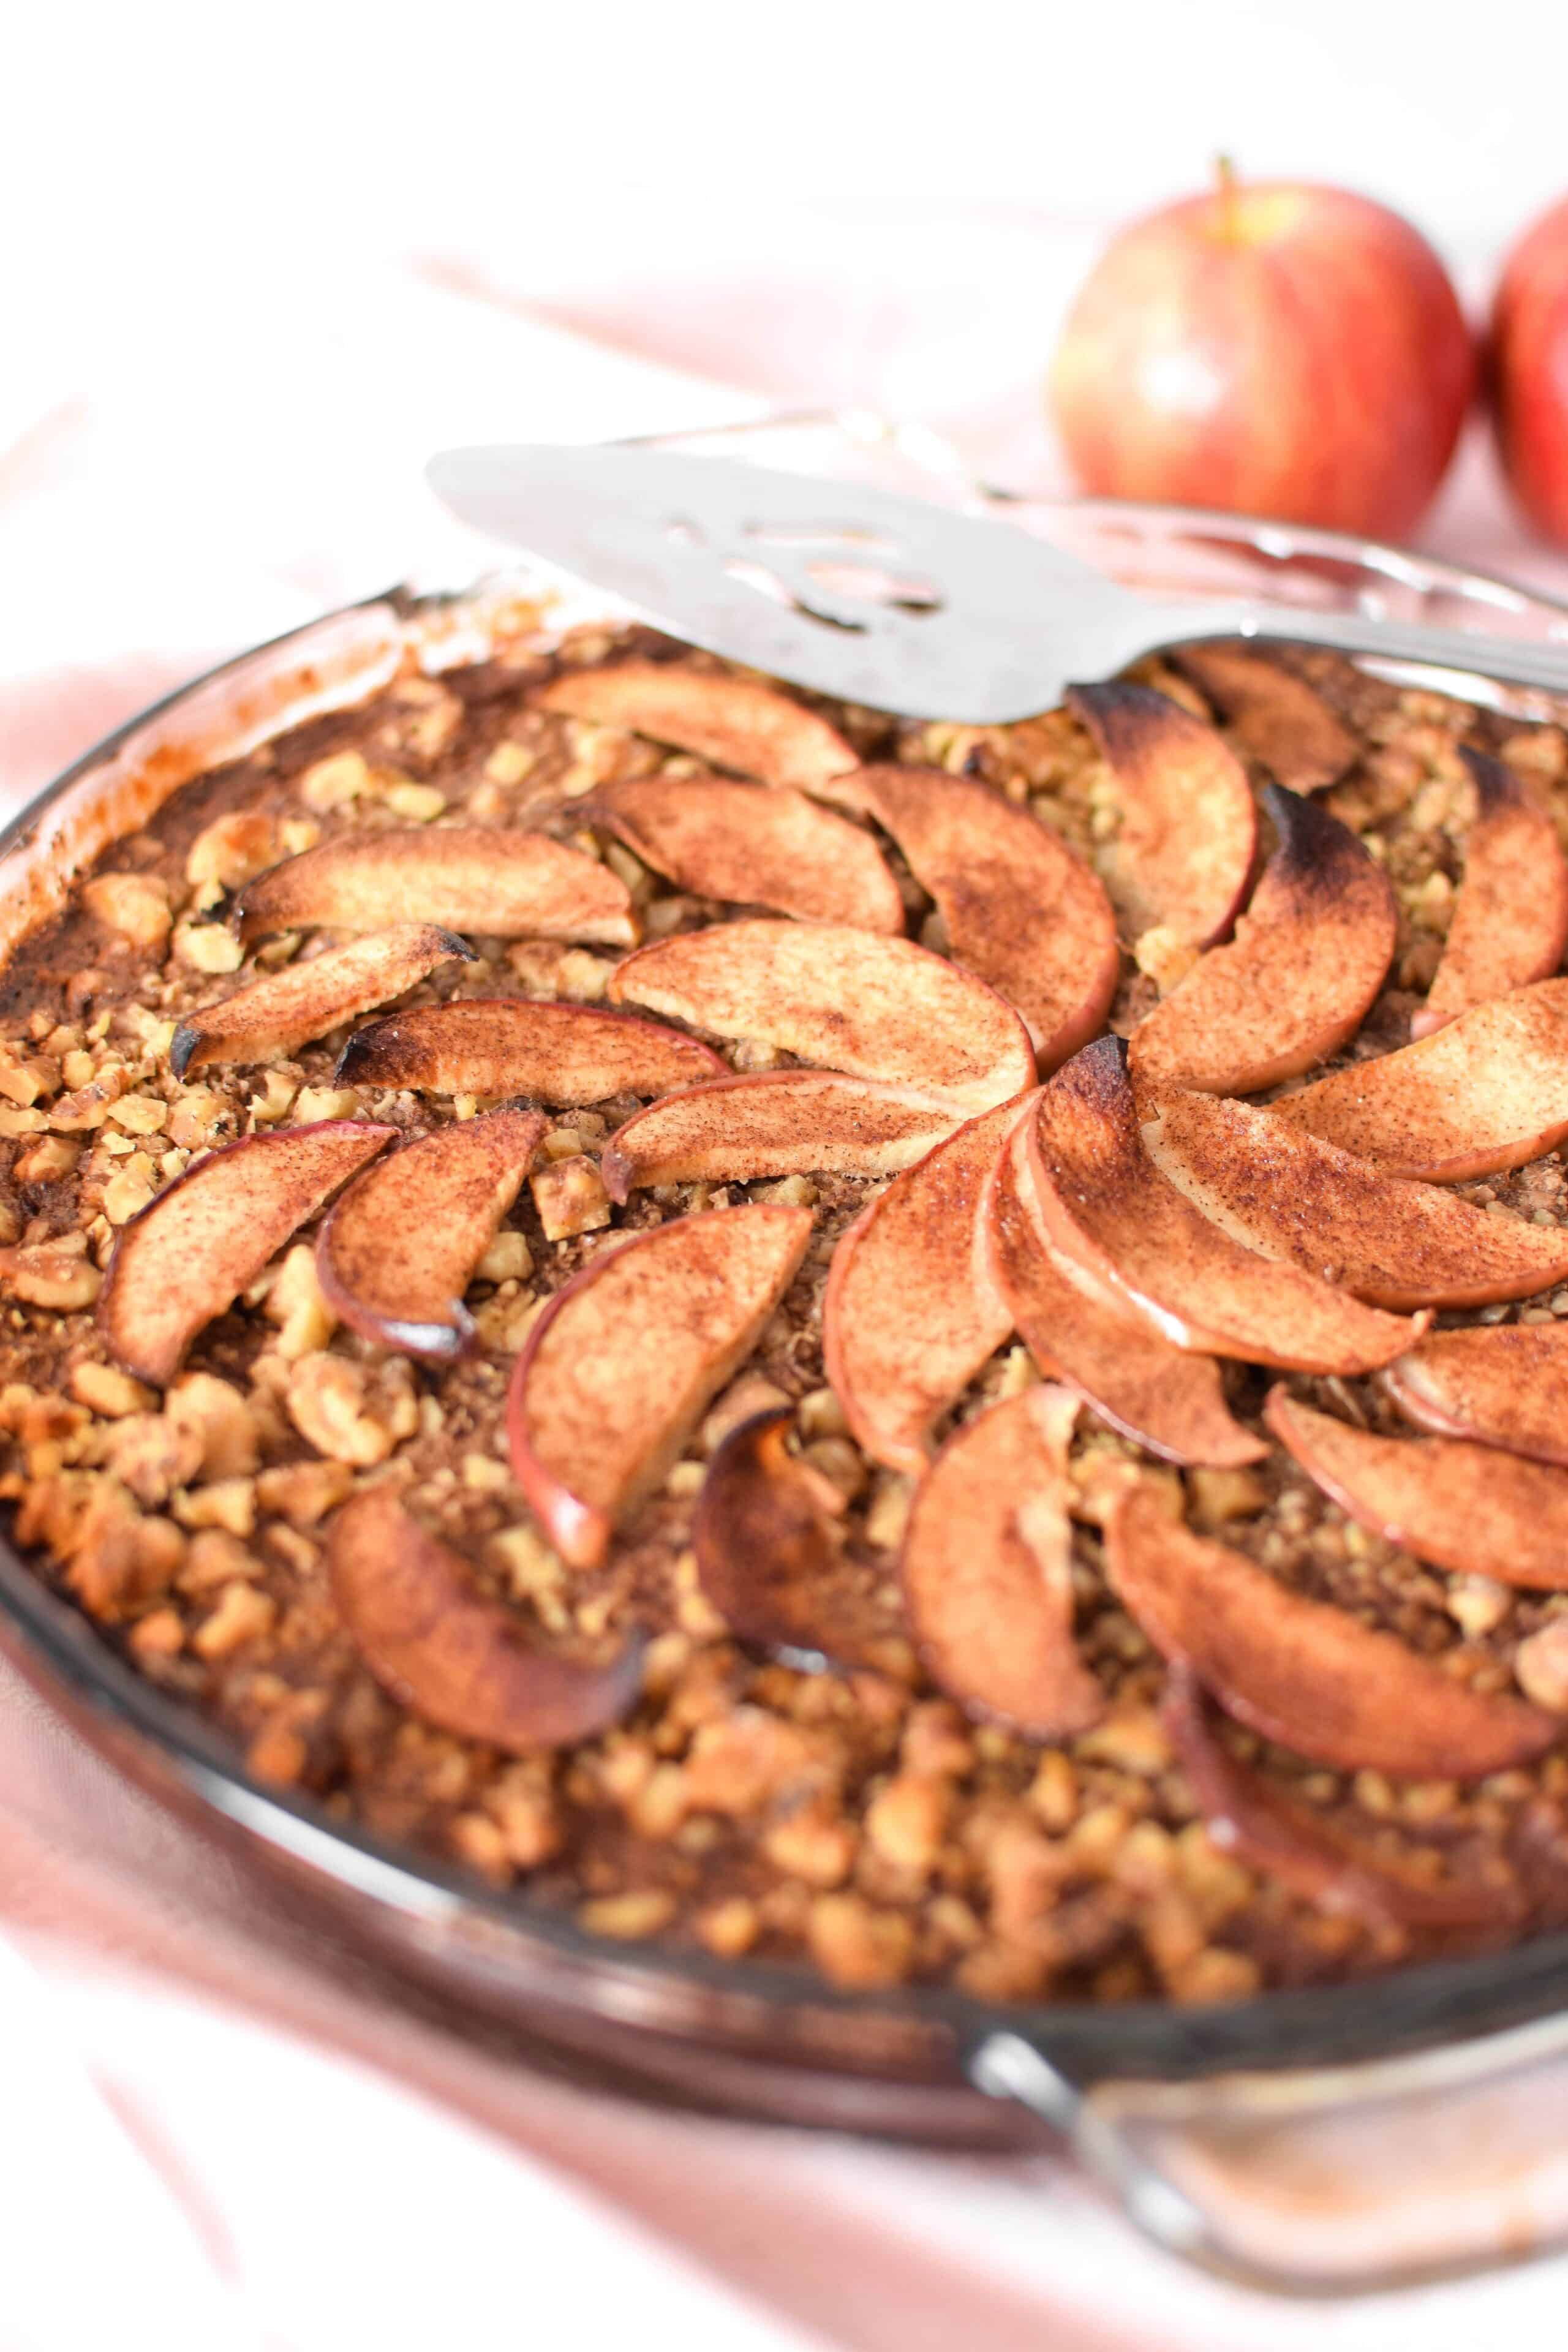 Apple Cinnamon Baked Oatmeal Cake